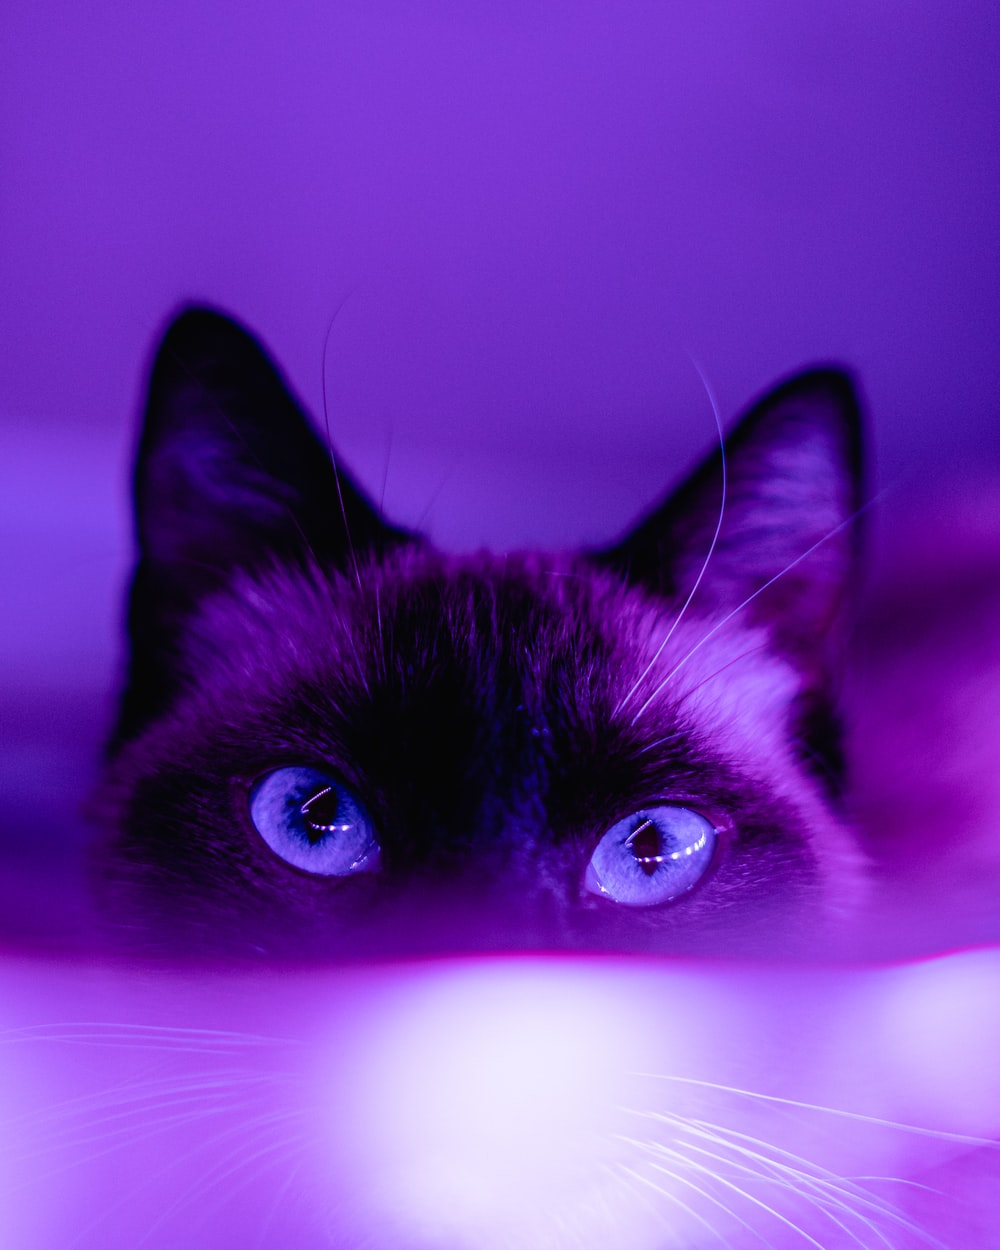 black cat in pink background